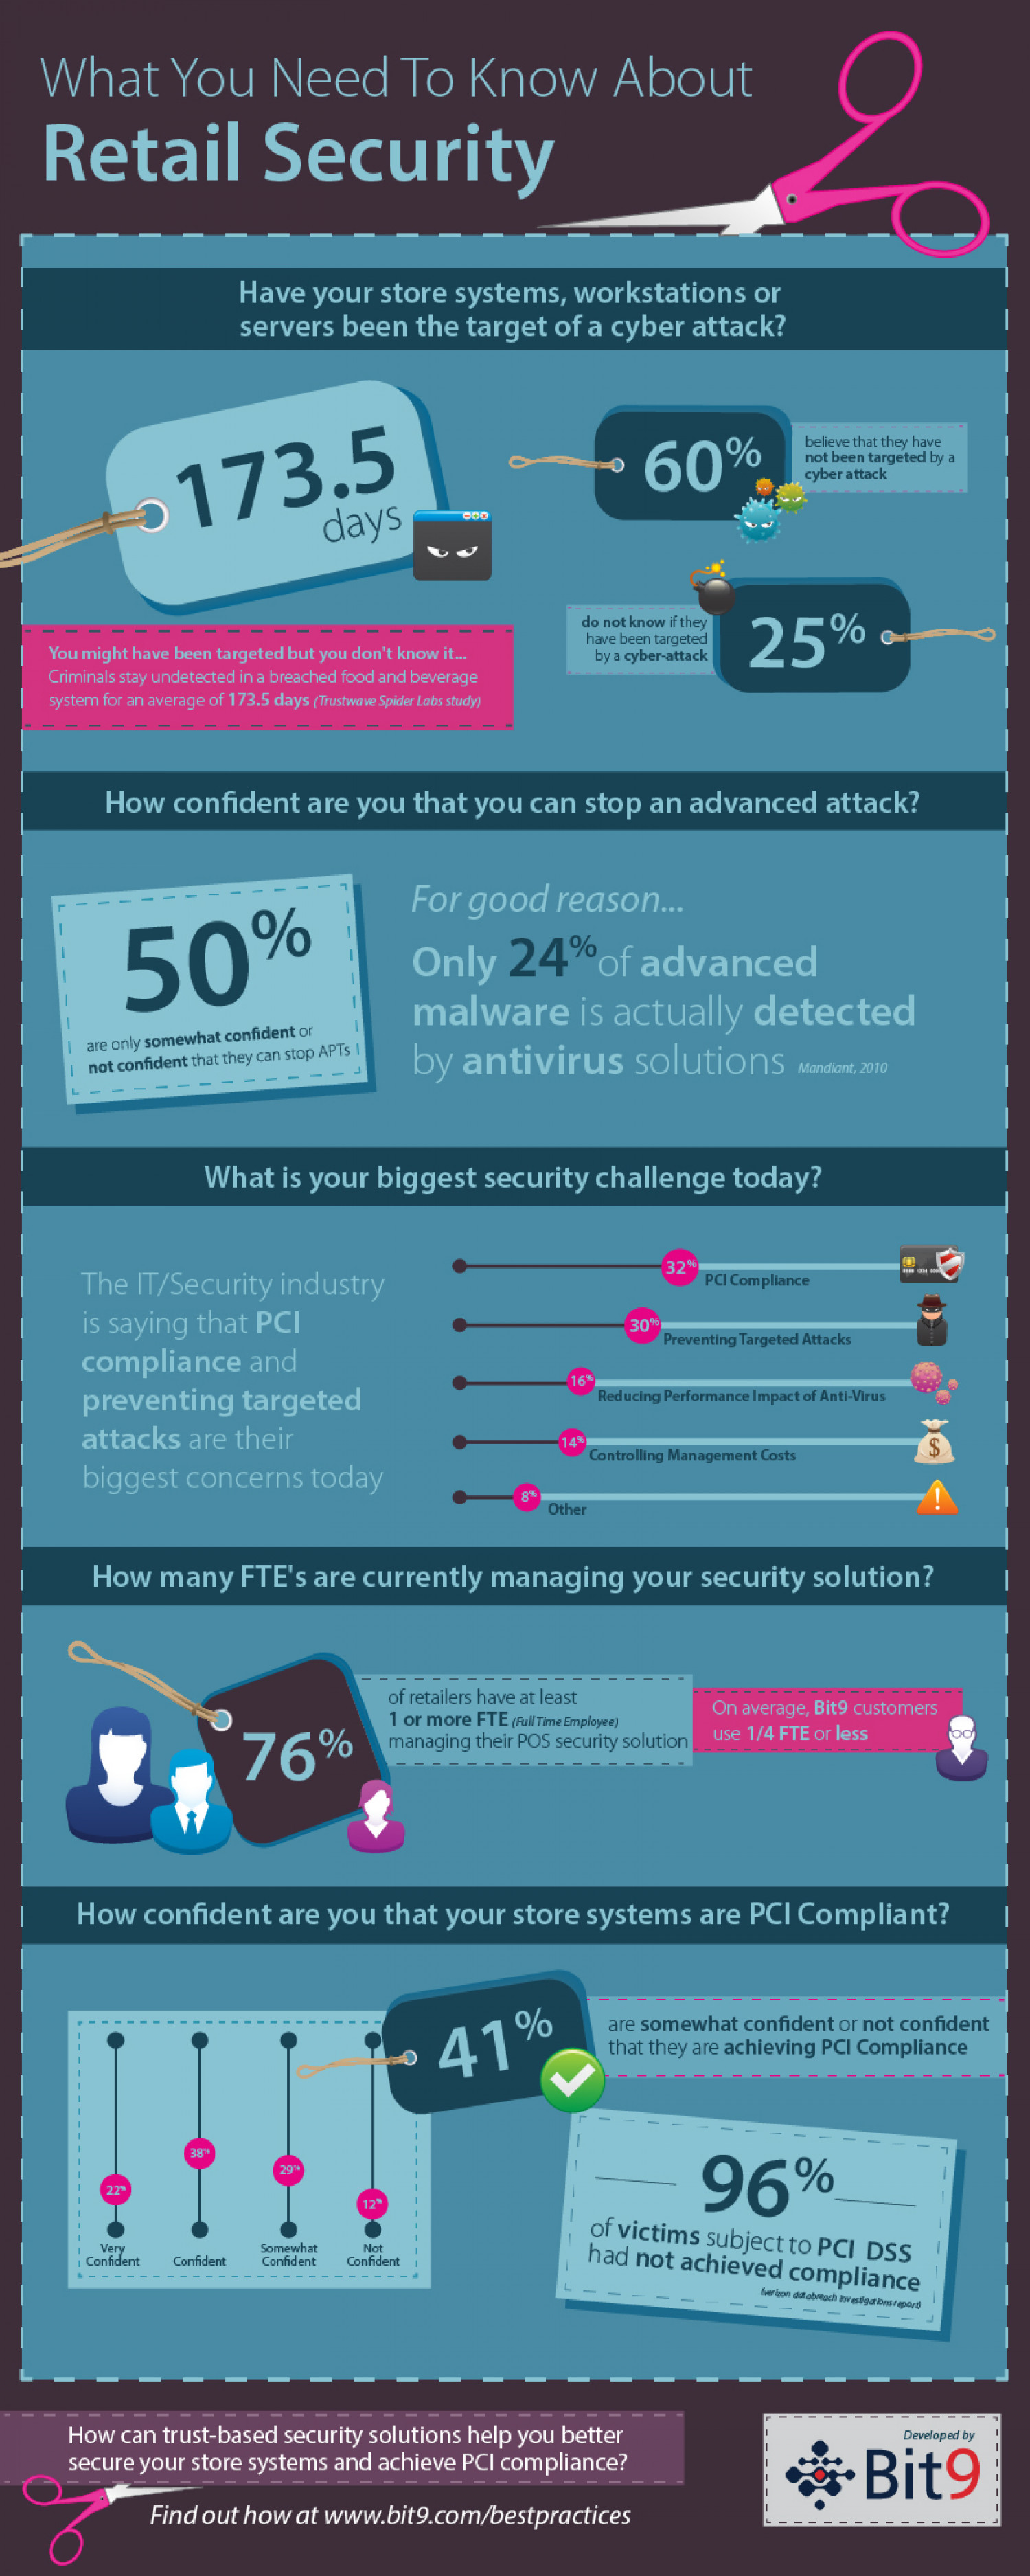 What You Need To Know About Retail Security Infographic